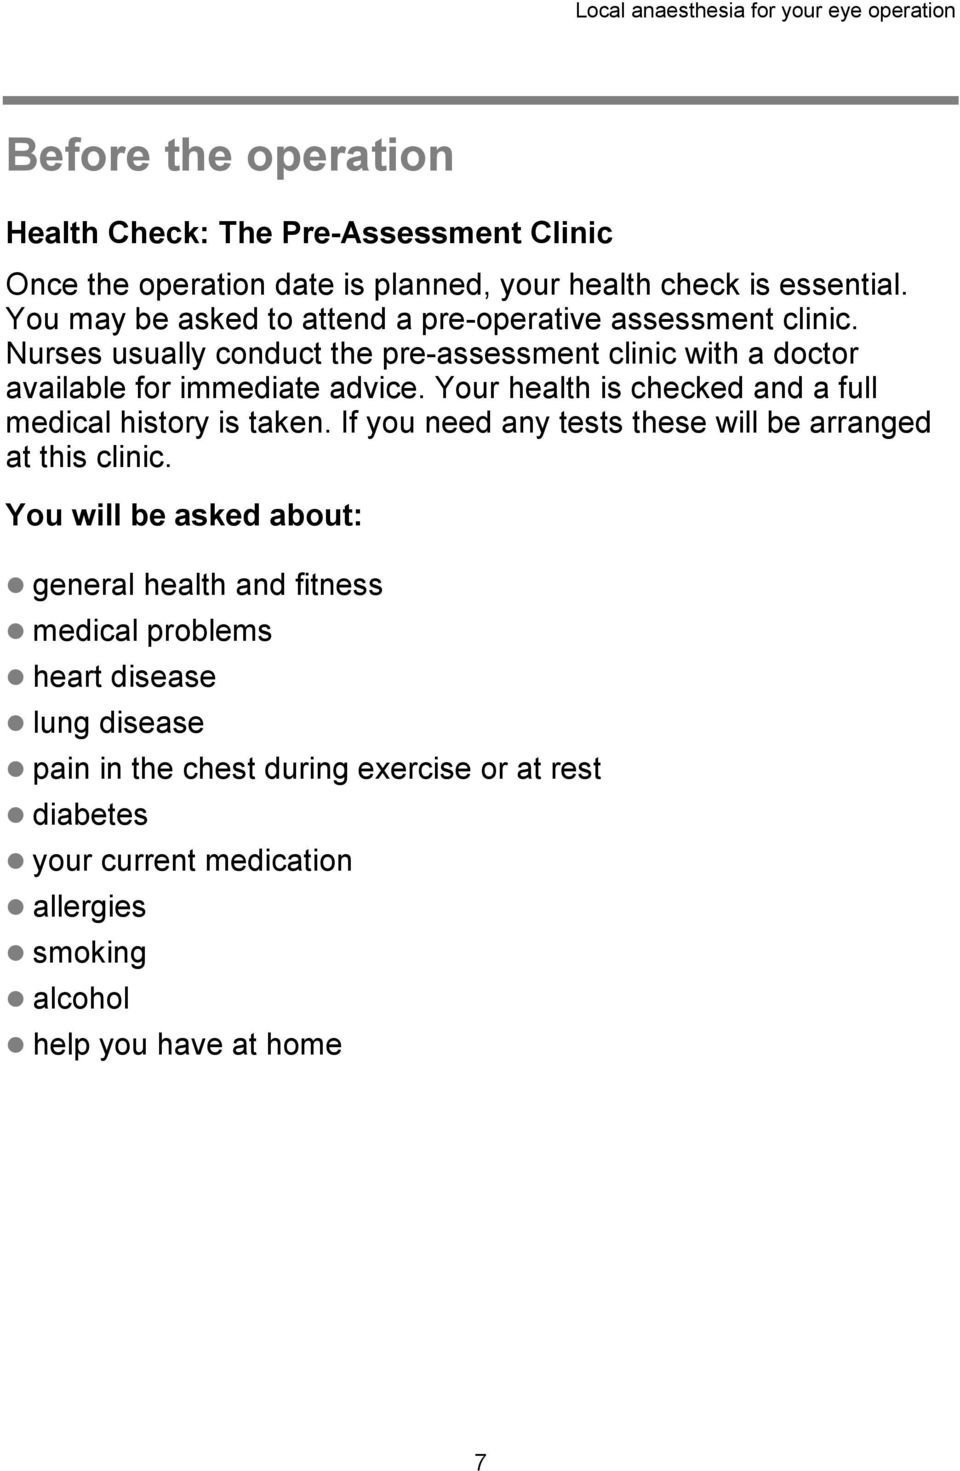 Your health is checked and a full medical history is taken. If you need any tests these will be arranged at this clinic.